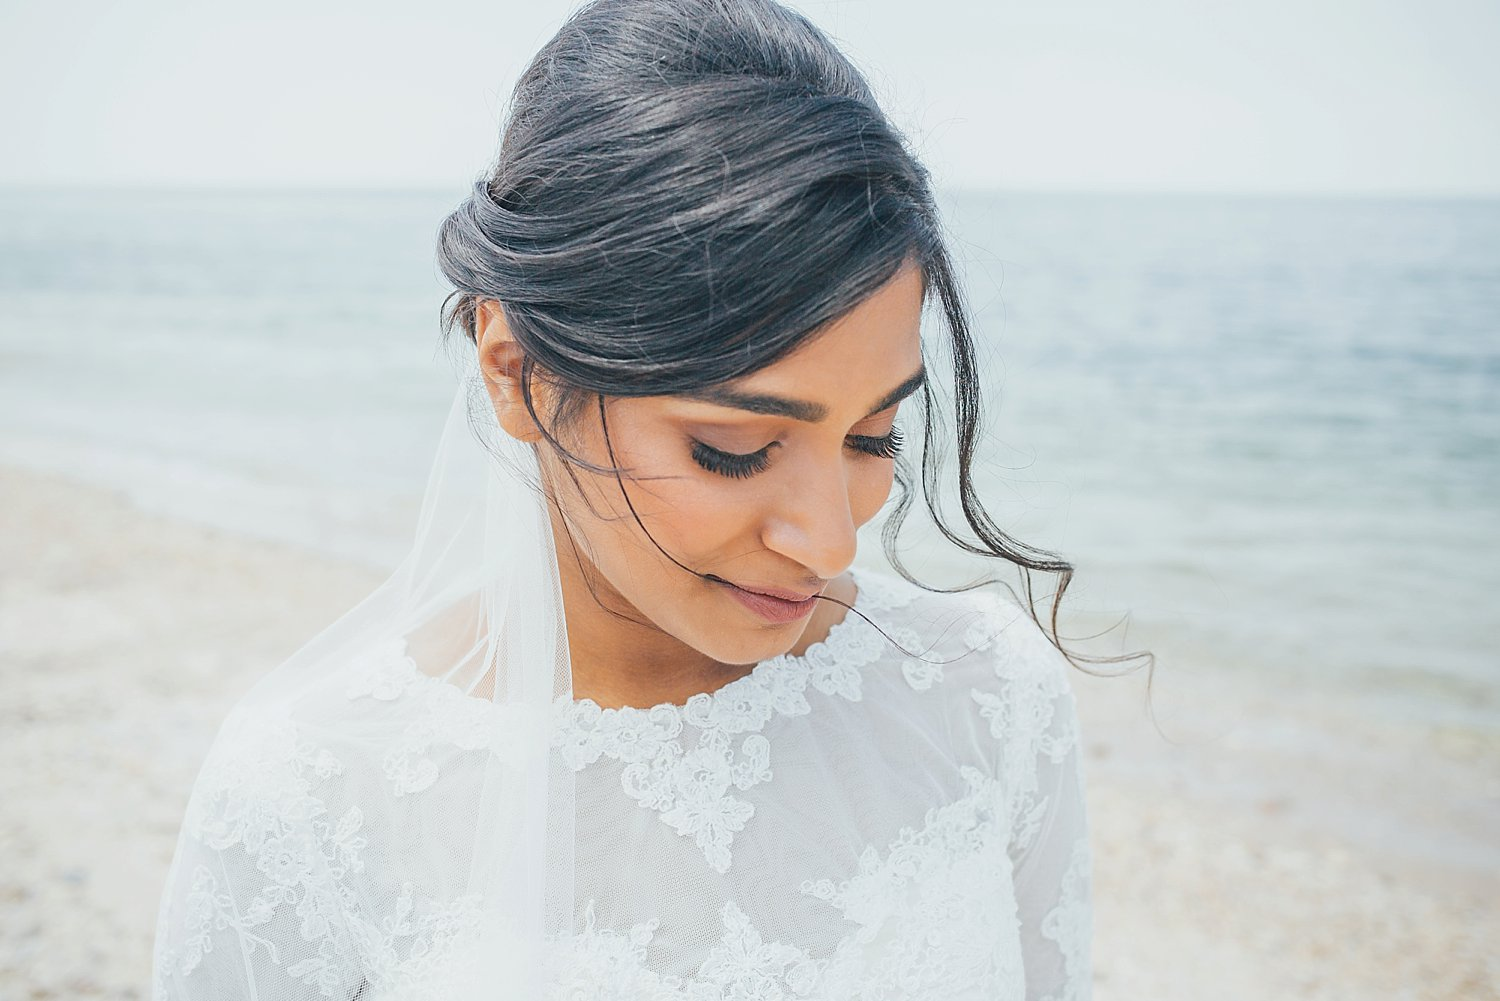 nyc-wedding-photography-nj-tri-state-cinematography-intothestory-by-moo-jae_0326.jpg